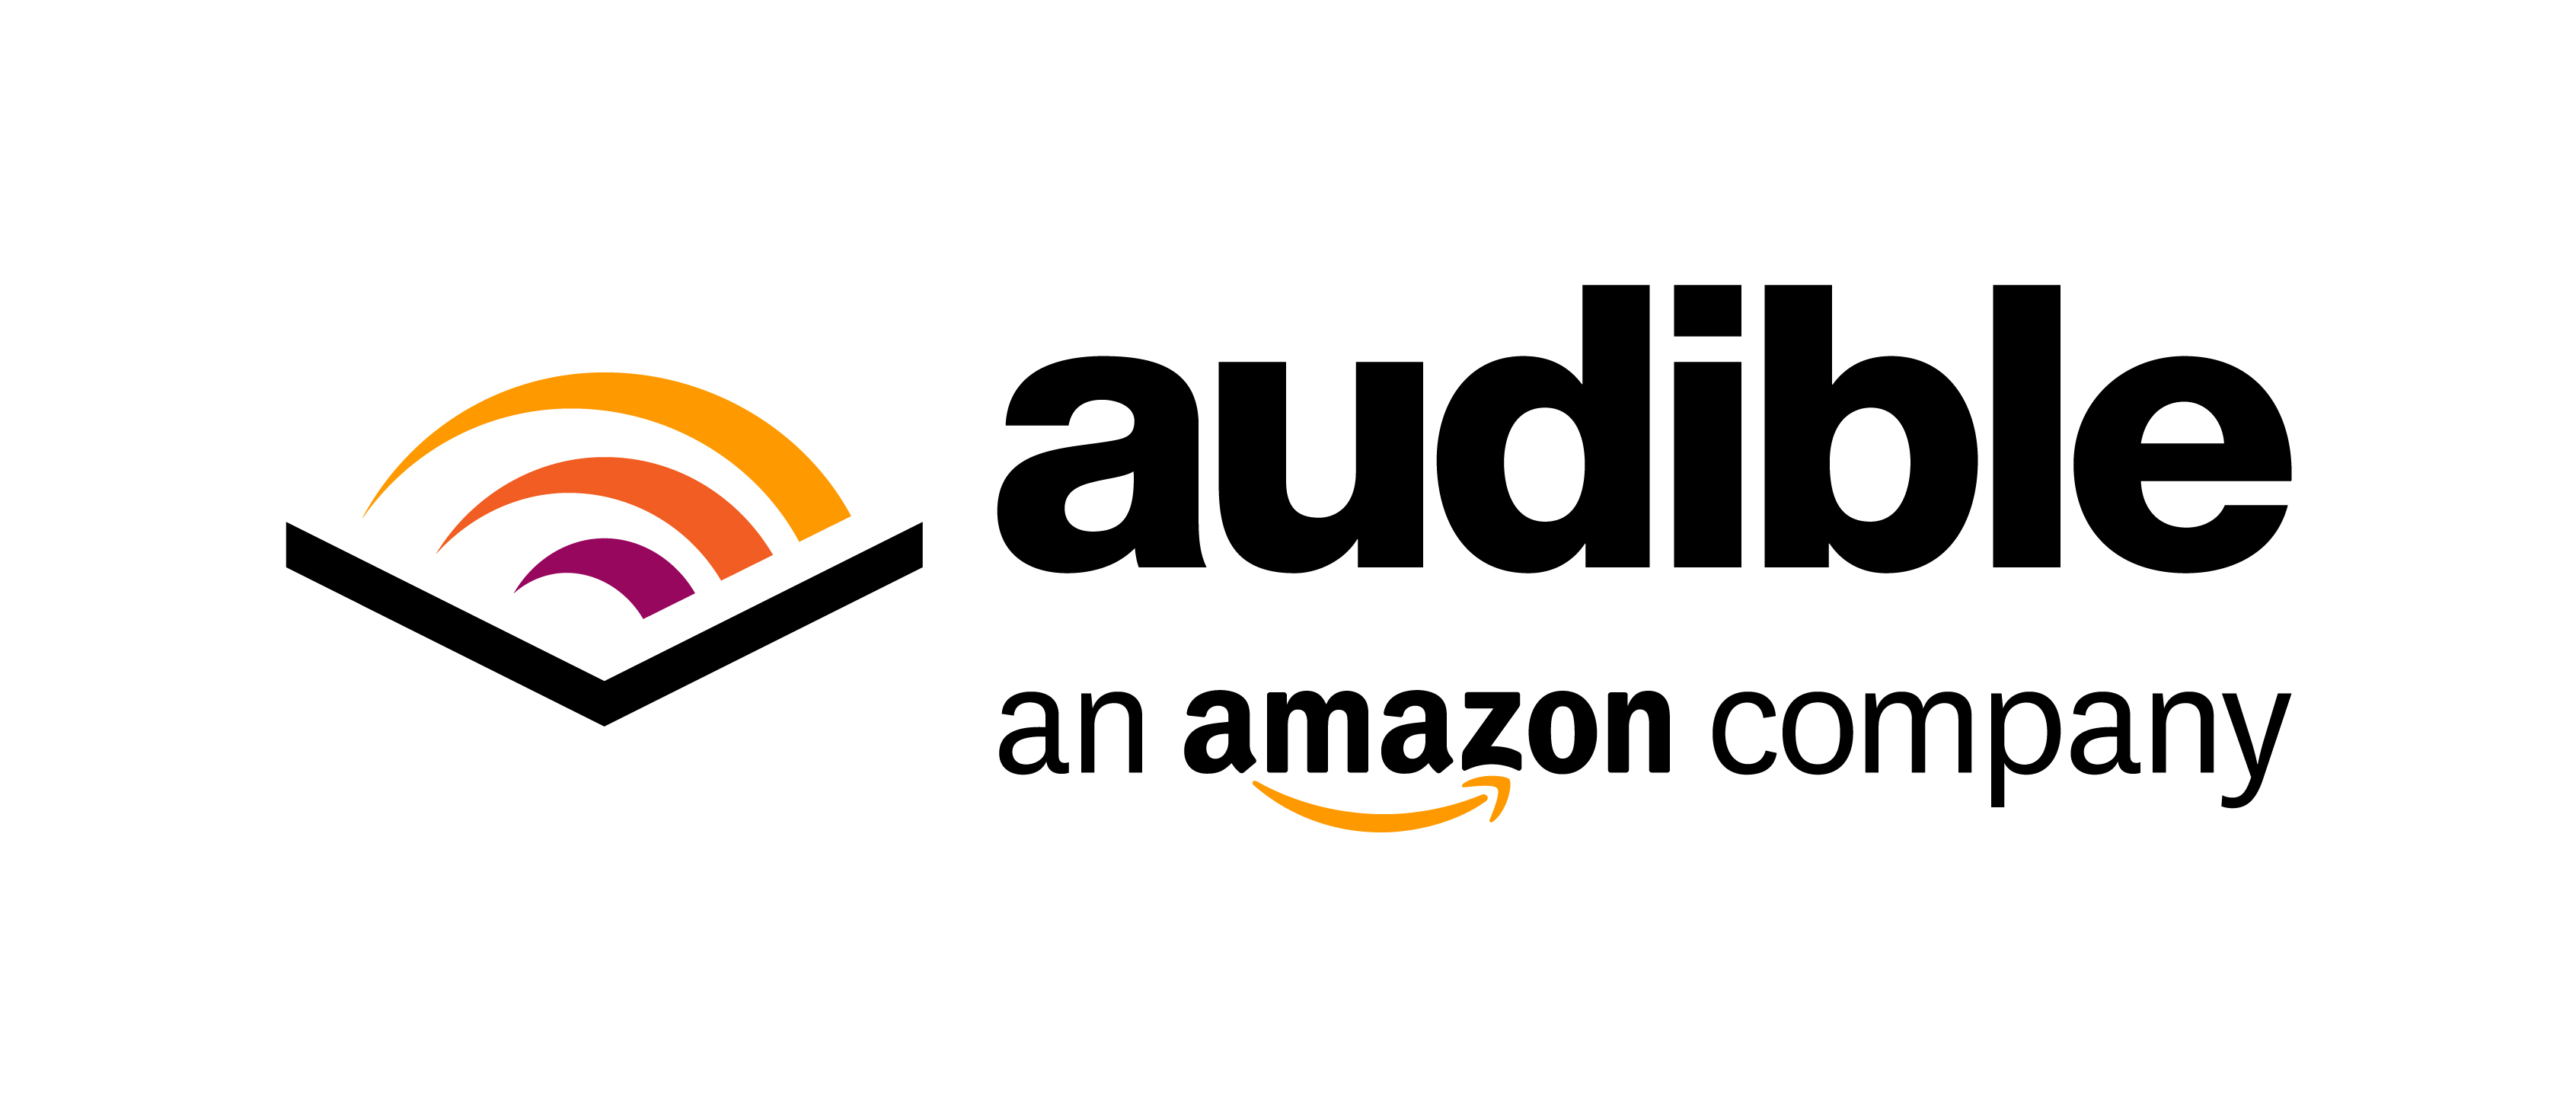 Amazon's Audible app receives support for Apple's CarPlay